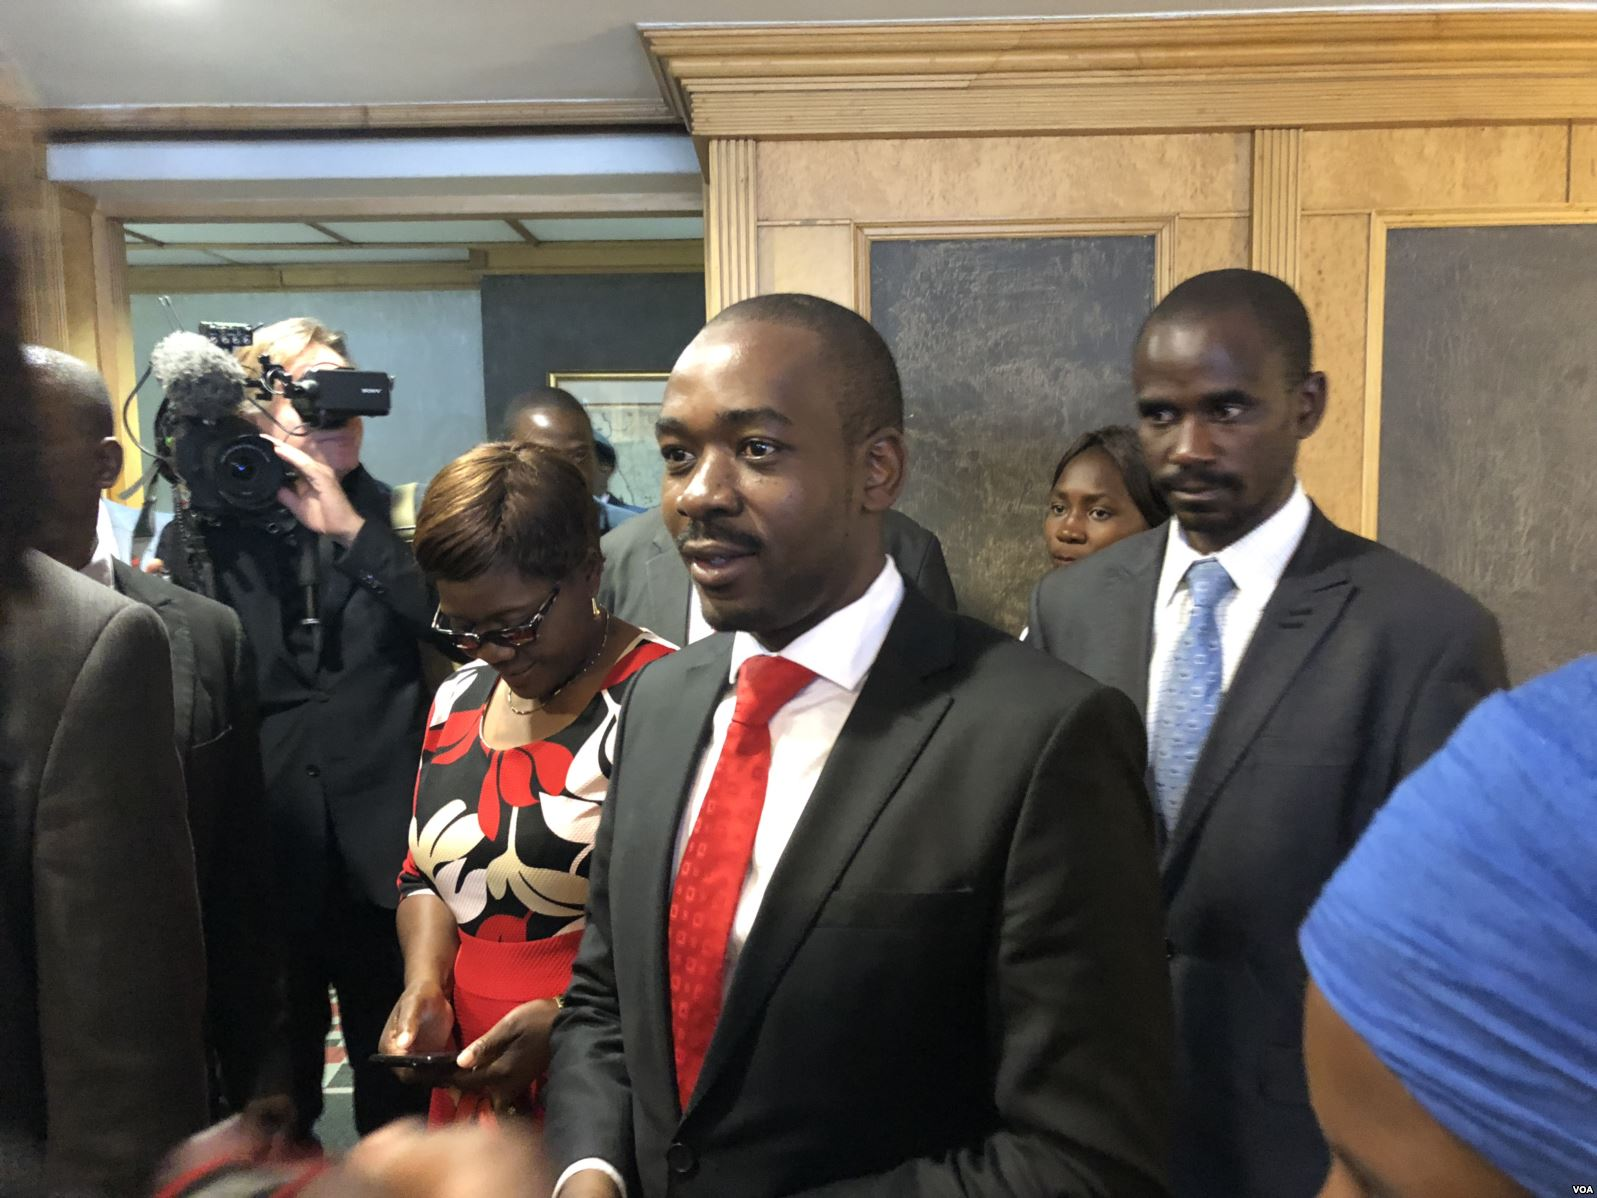 Nelson Chamisa calls on supporters to fast, pray ahead of Zim elections